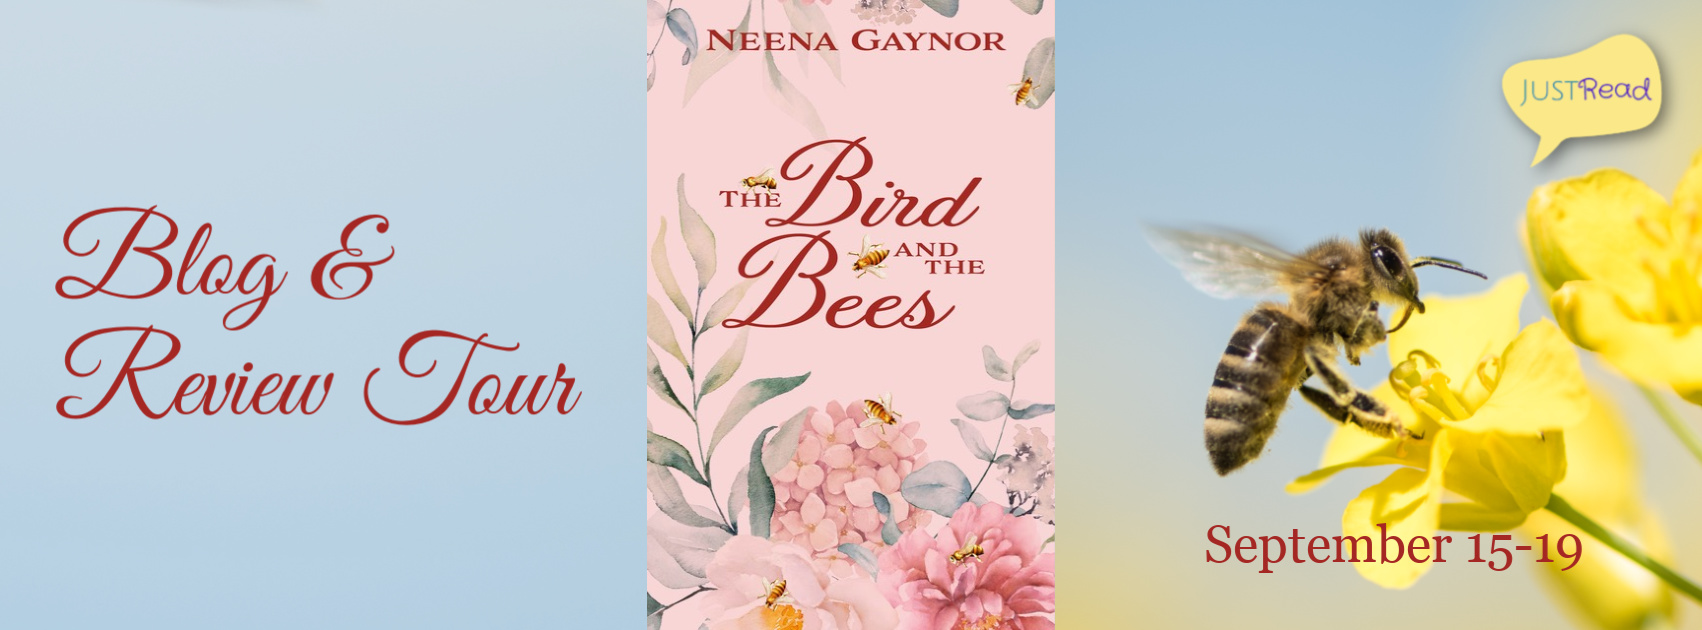 Welcome to The Bird and the Bees Blog Tour & Giveaway!